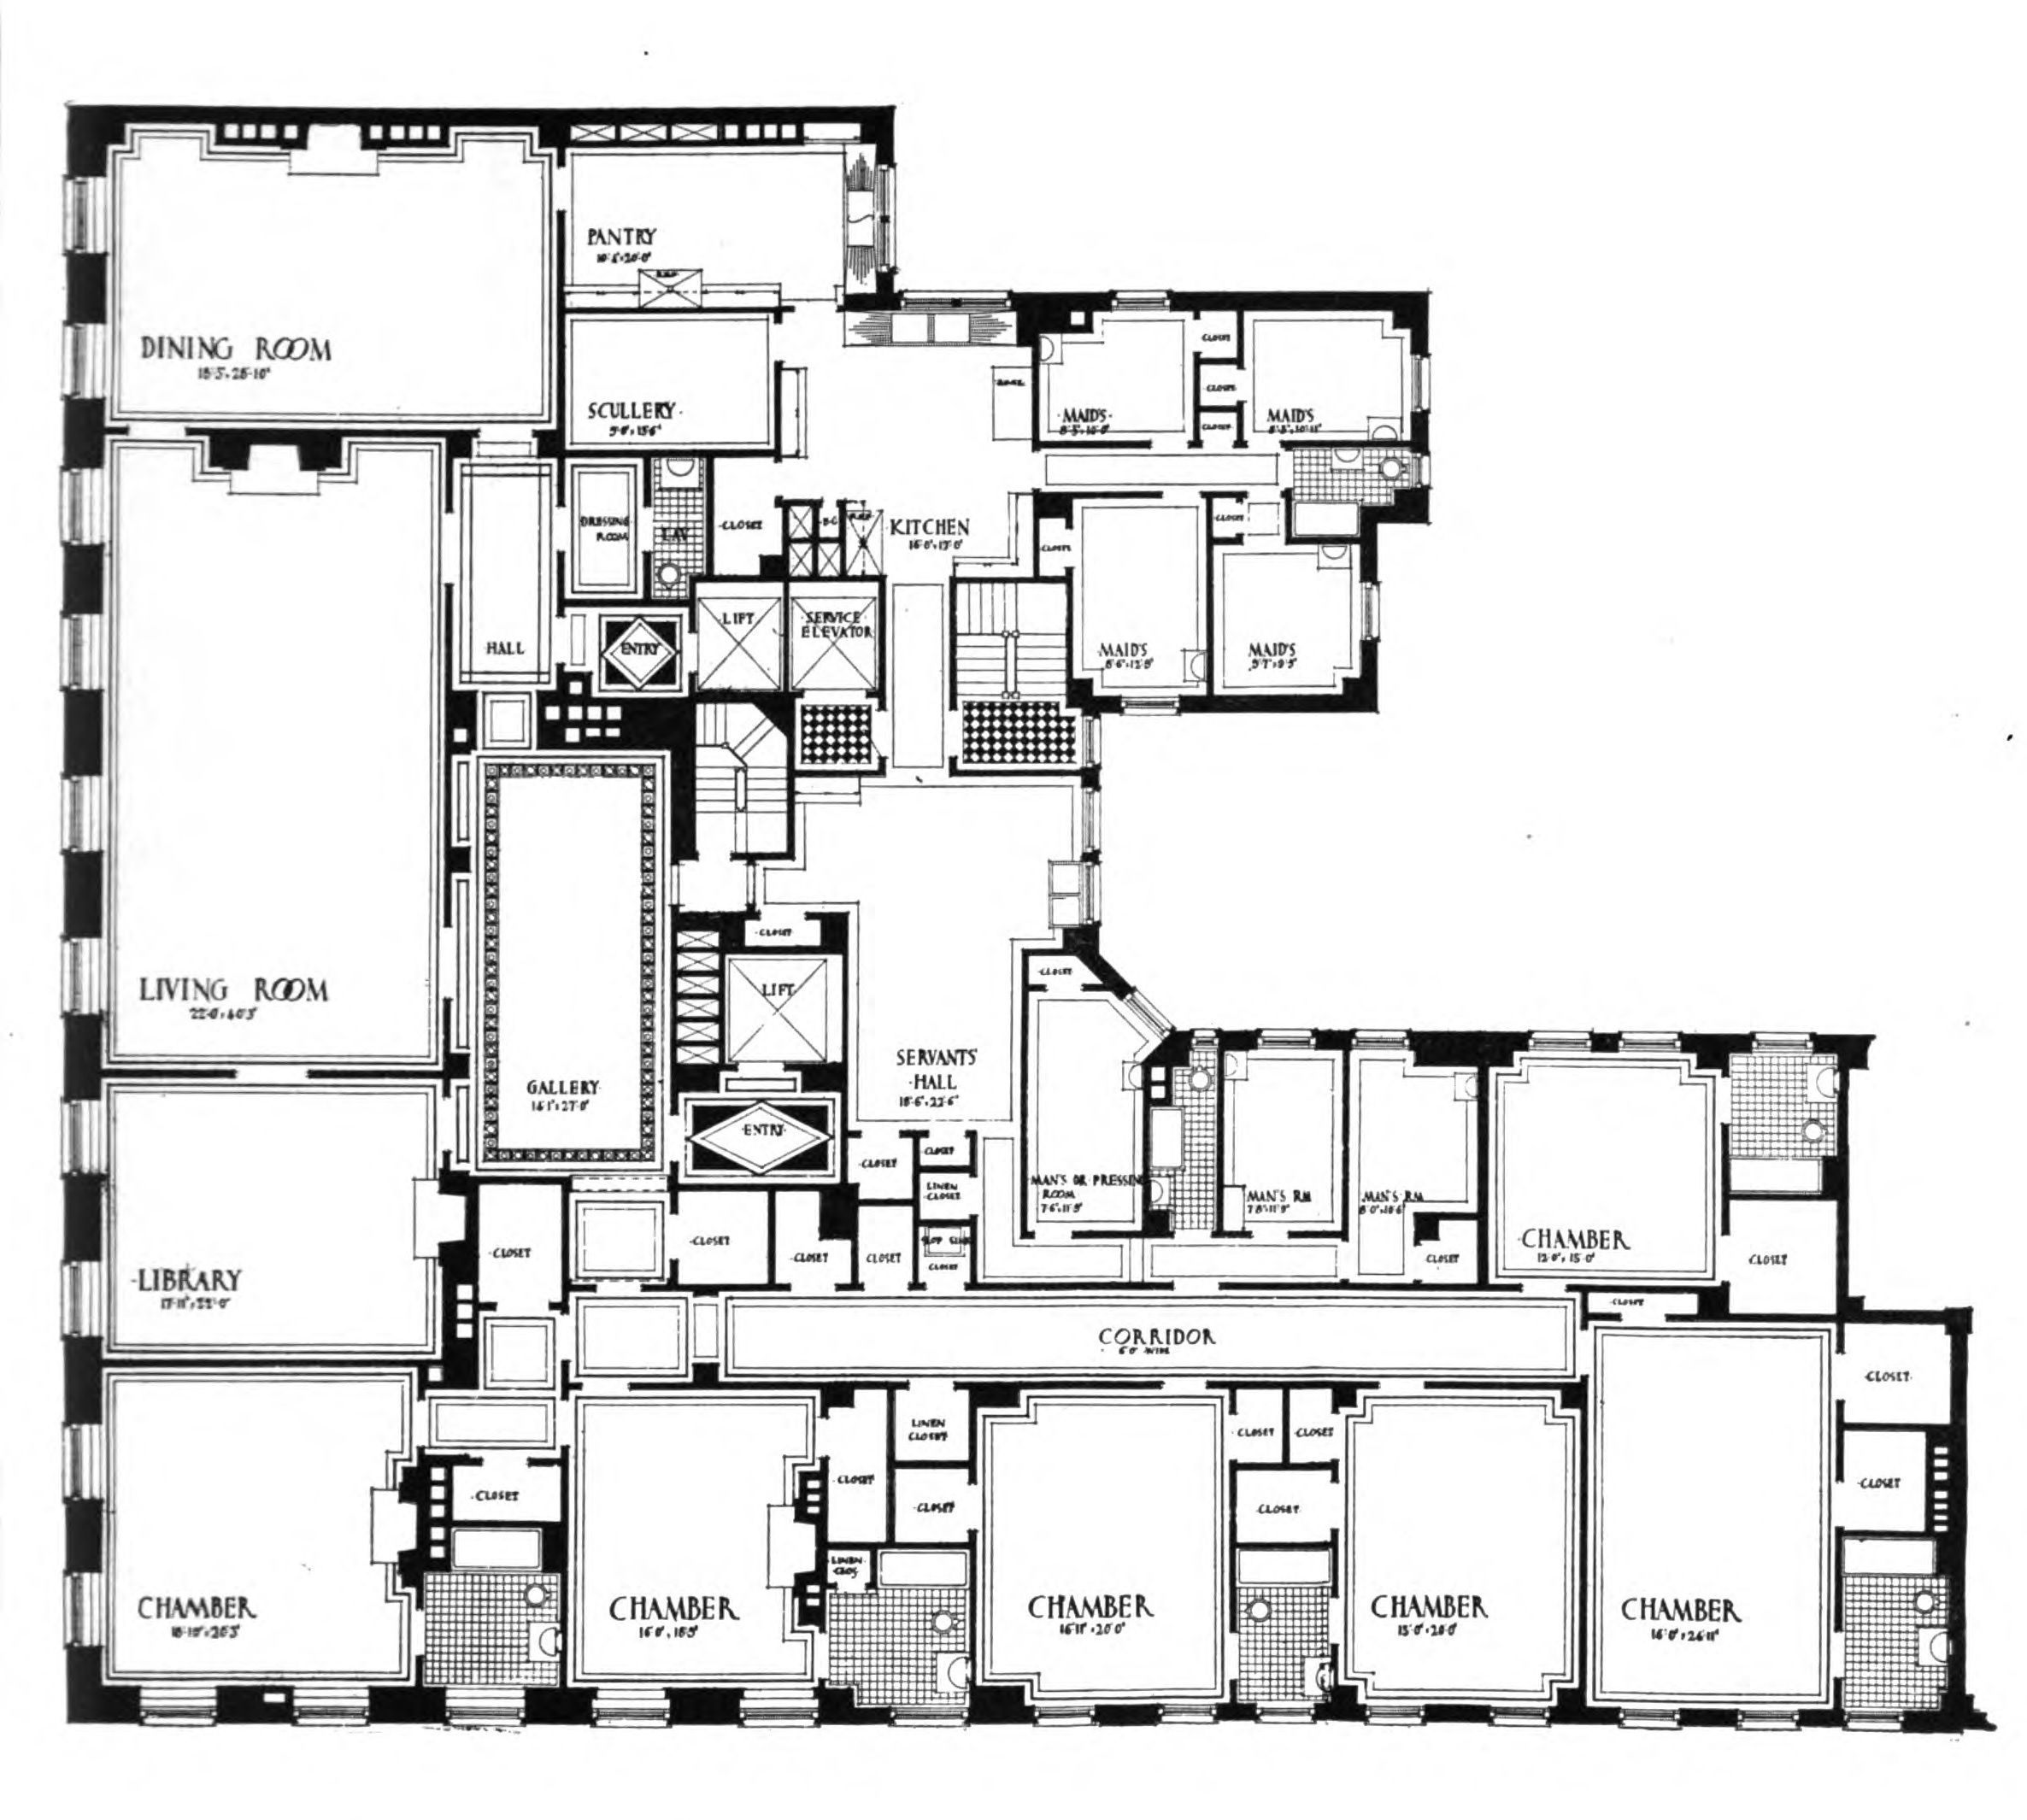 Uncategorized:960 Fifth Avenue Floor Plan Impressive In